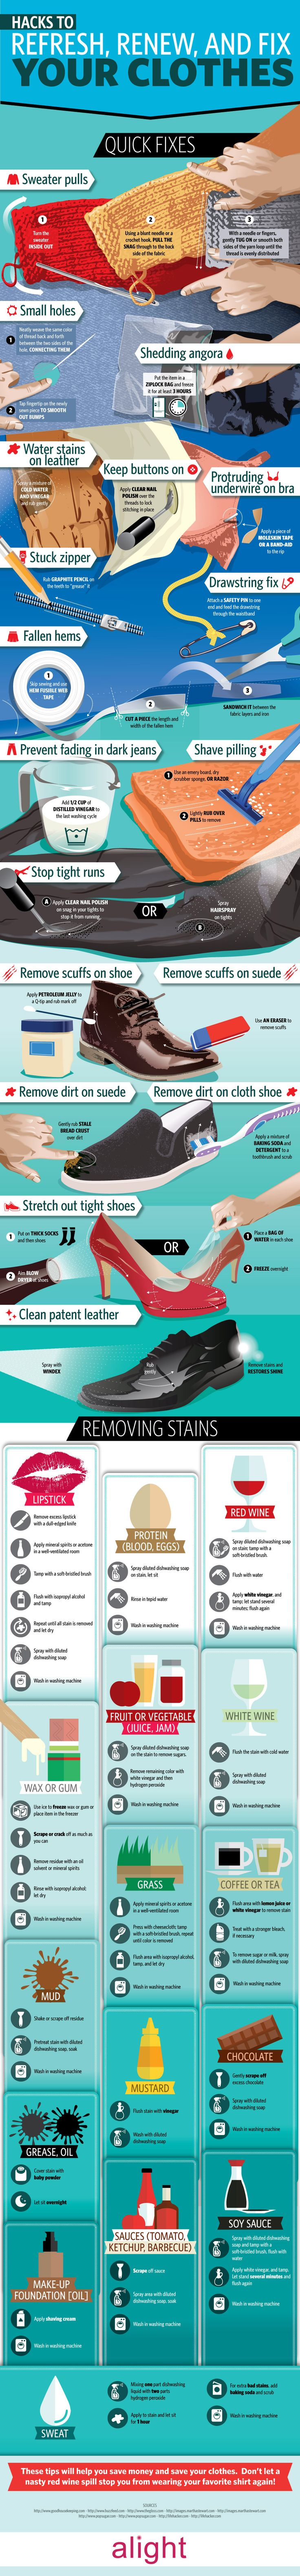 Fashion | Refresh, Renew and Fix Your Clothes - #goodtoknow